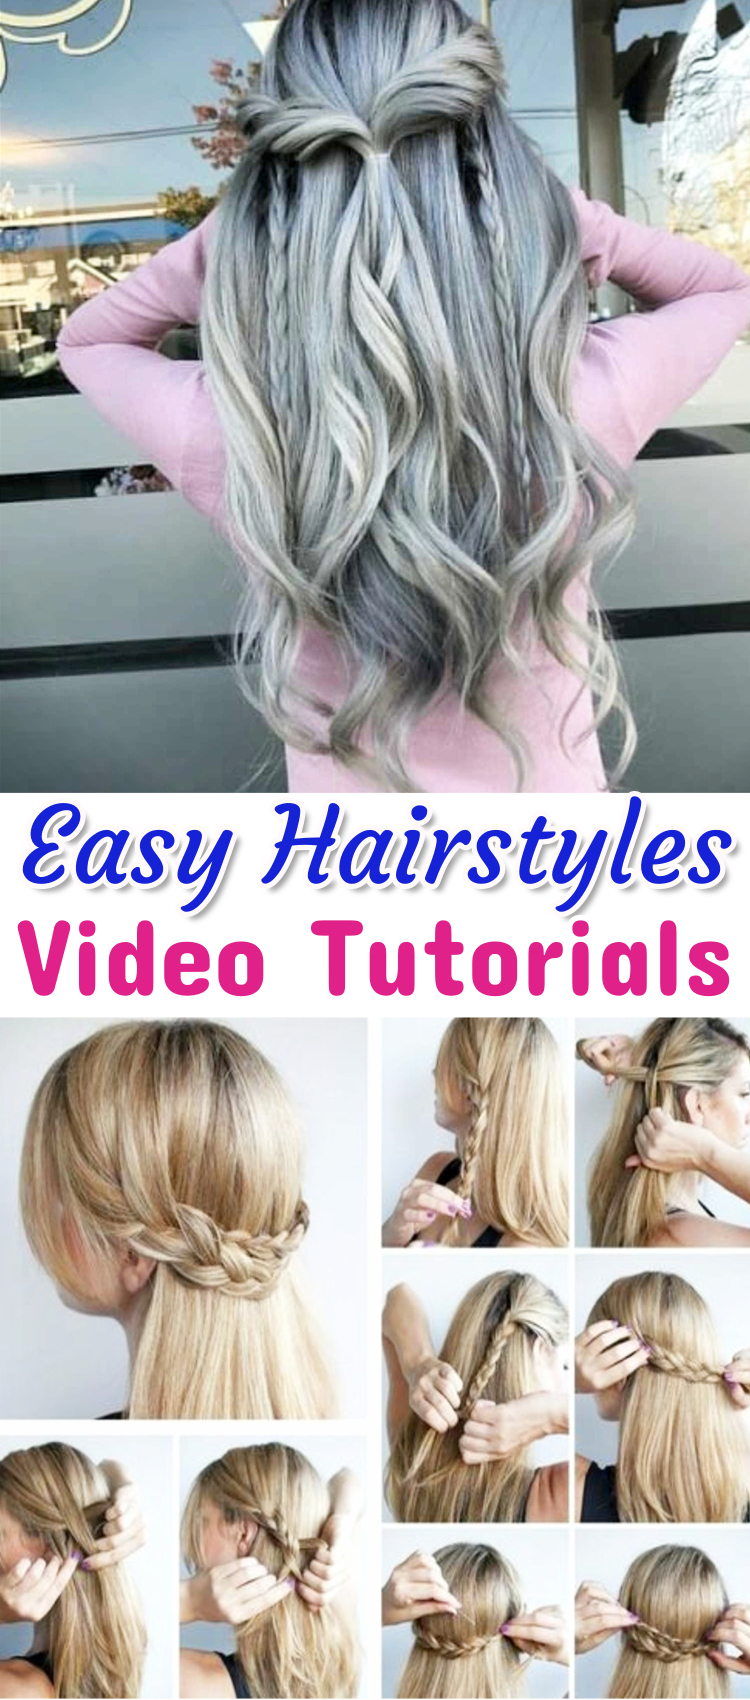 Lazy Hairstyles - Easy hairstyle ideas video tutorials - easy step by step instructions - lazy hairstyles of medium hair, long hair, short hair, for work, for school or just simple messy hairstyles for lazy days (great for beginners)